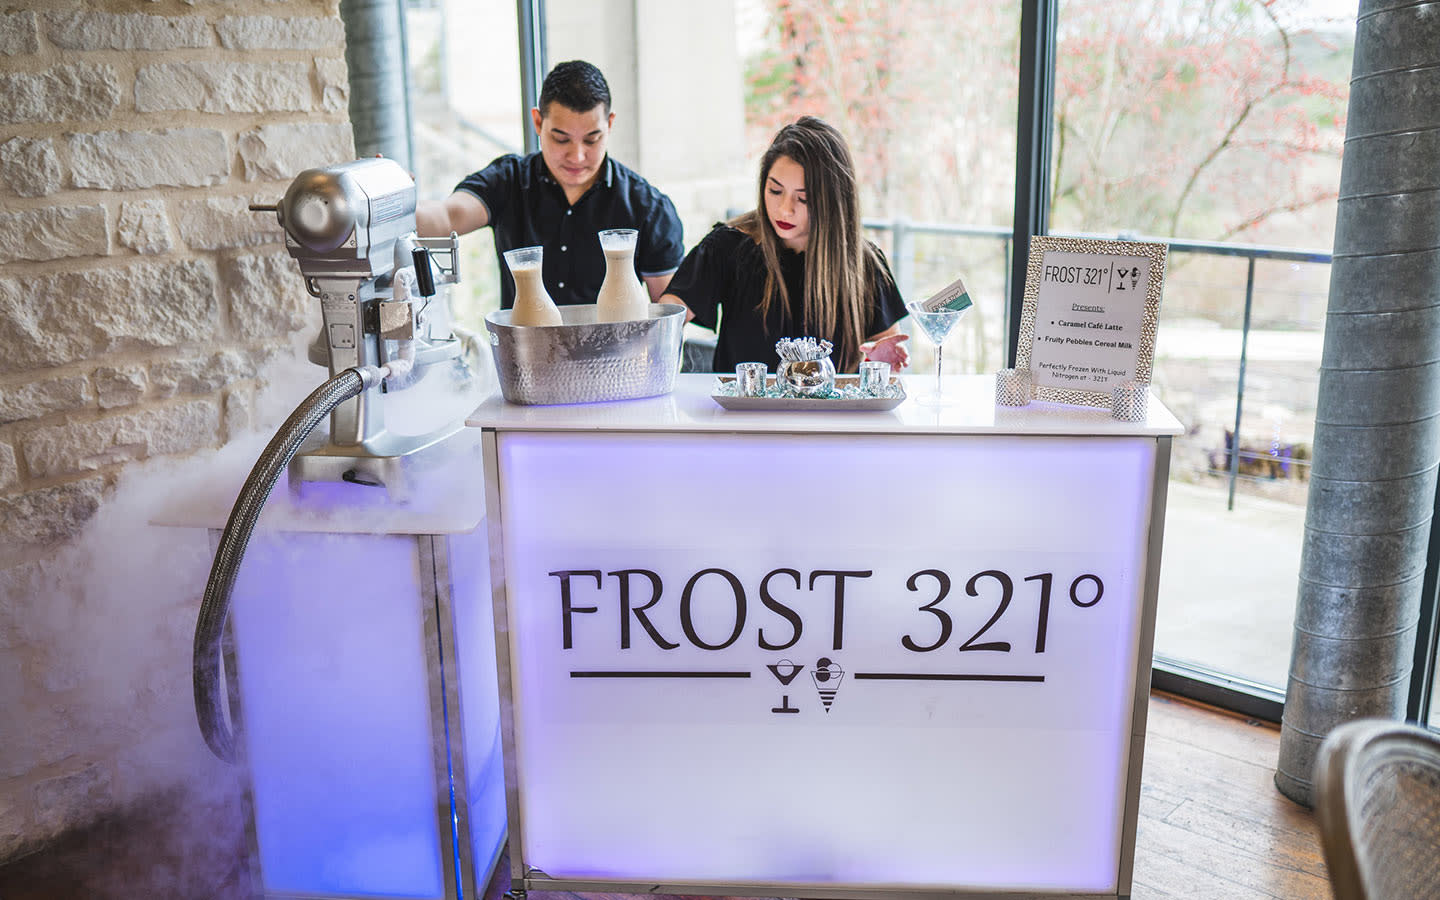 Frost321